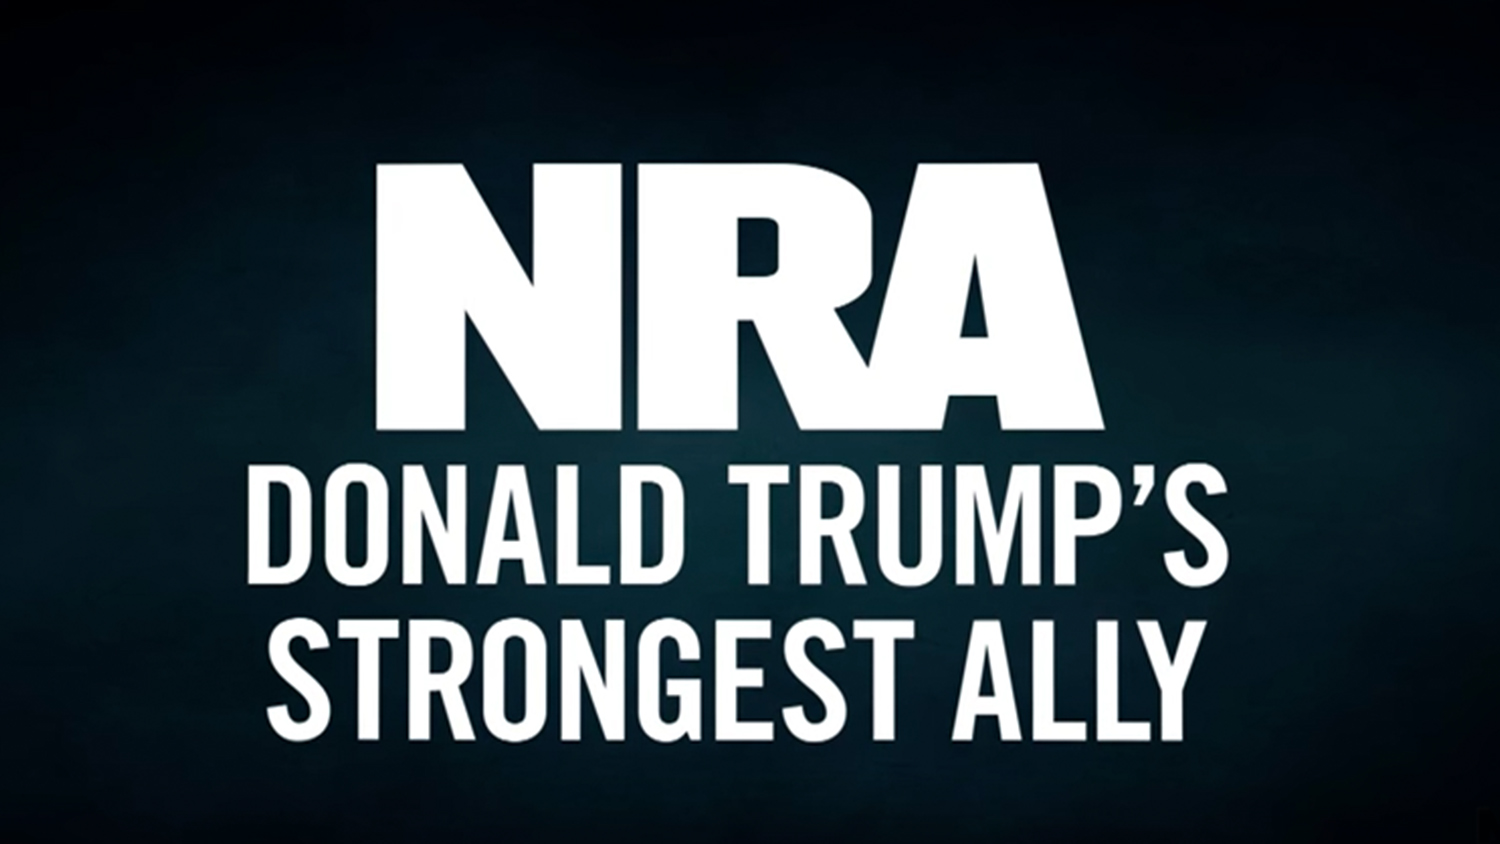 NRA: Donald Trump's Strongest Ally